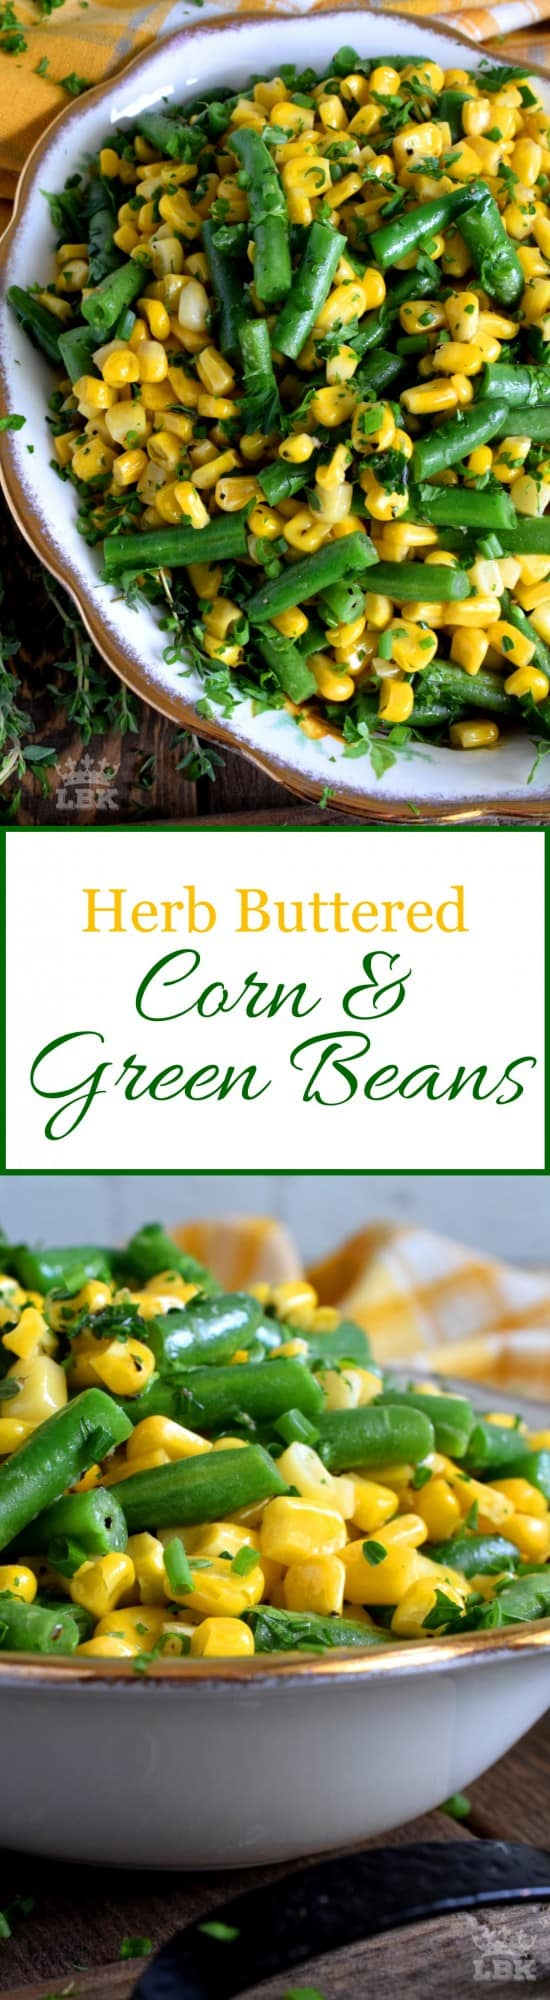 Herb Buttered Corn and Green Beans